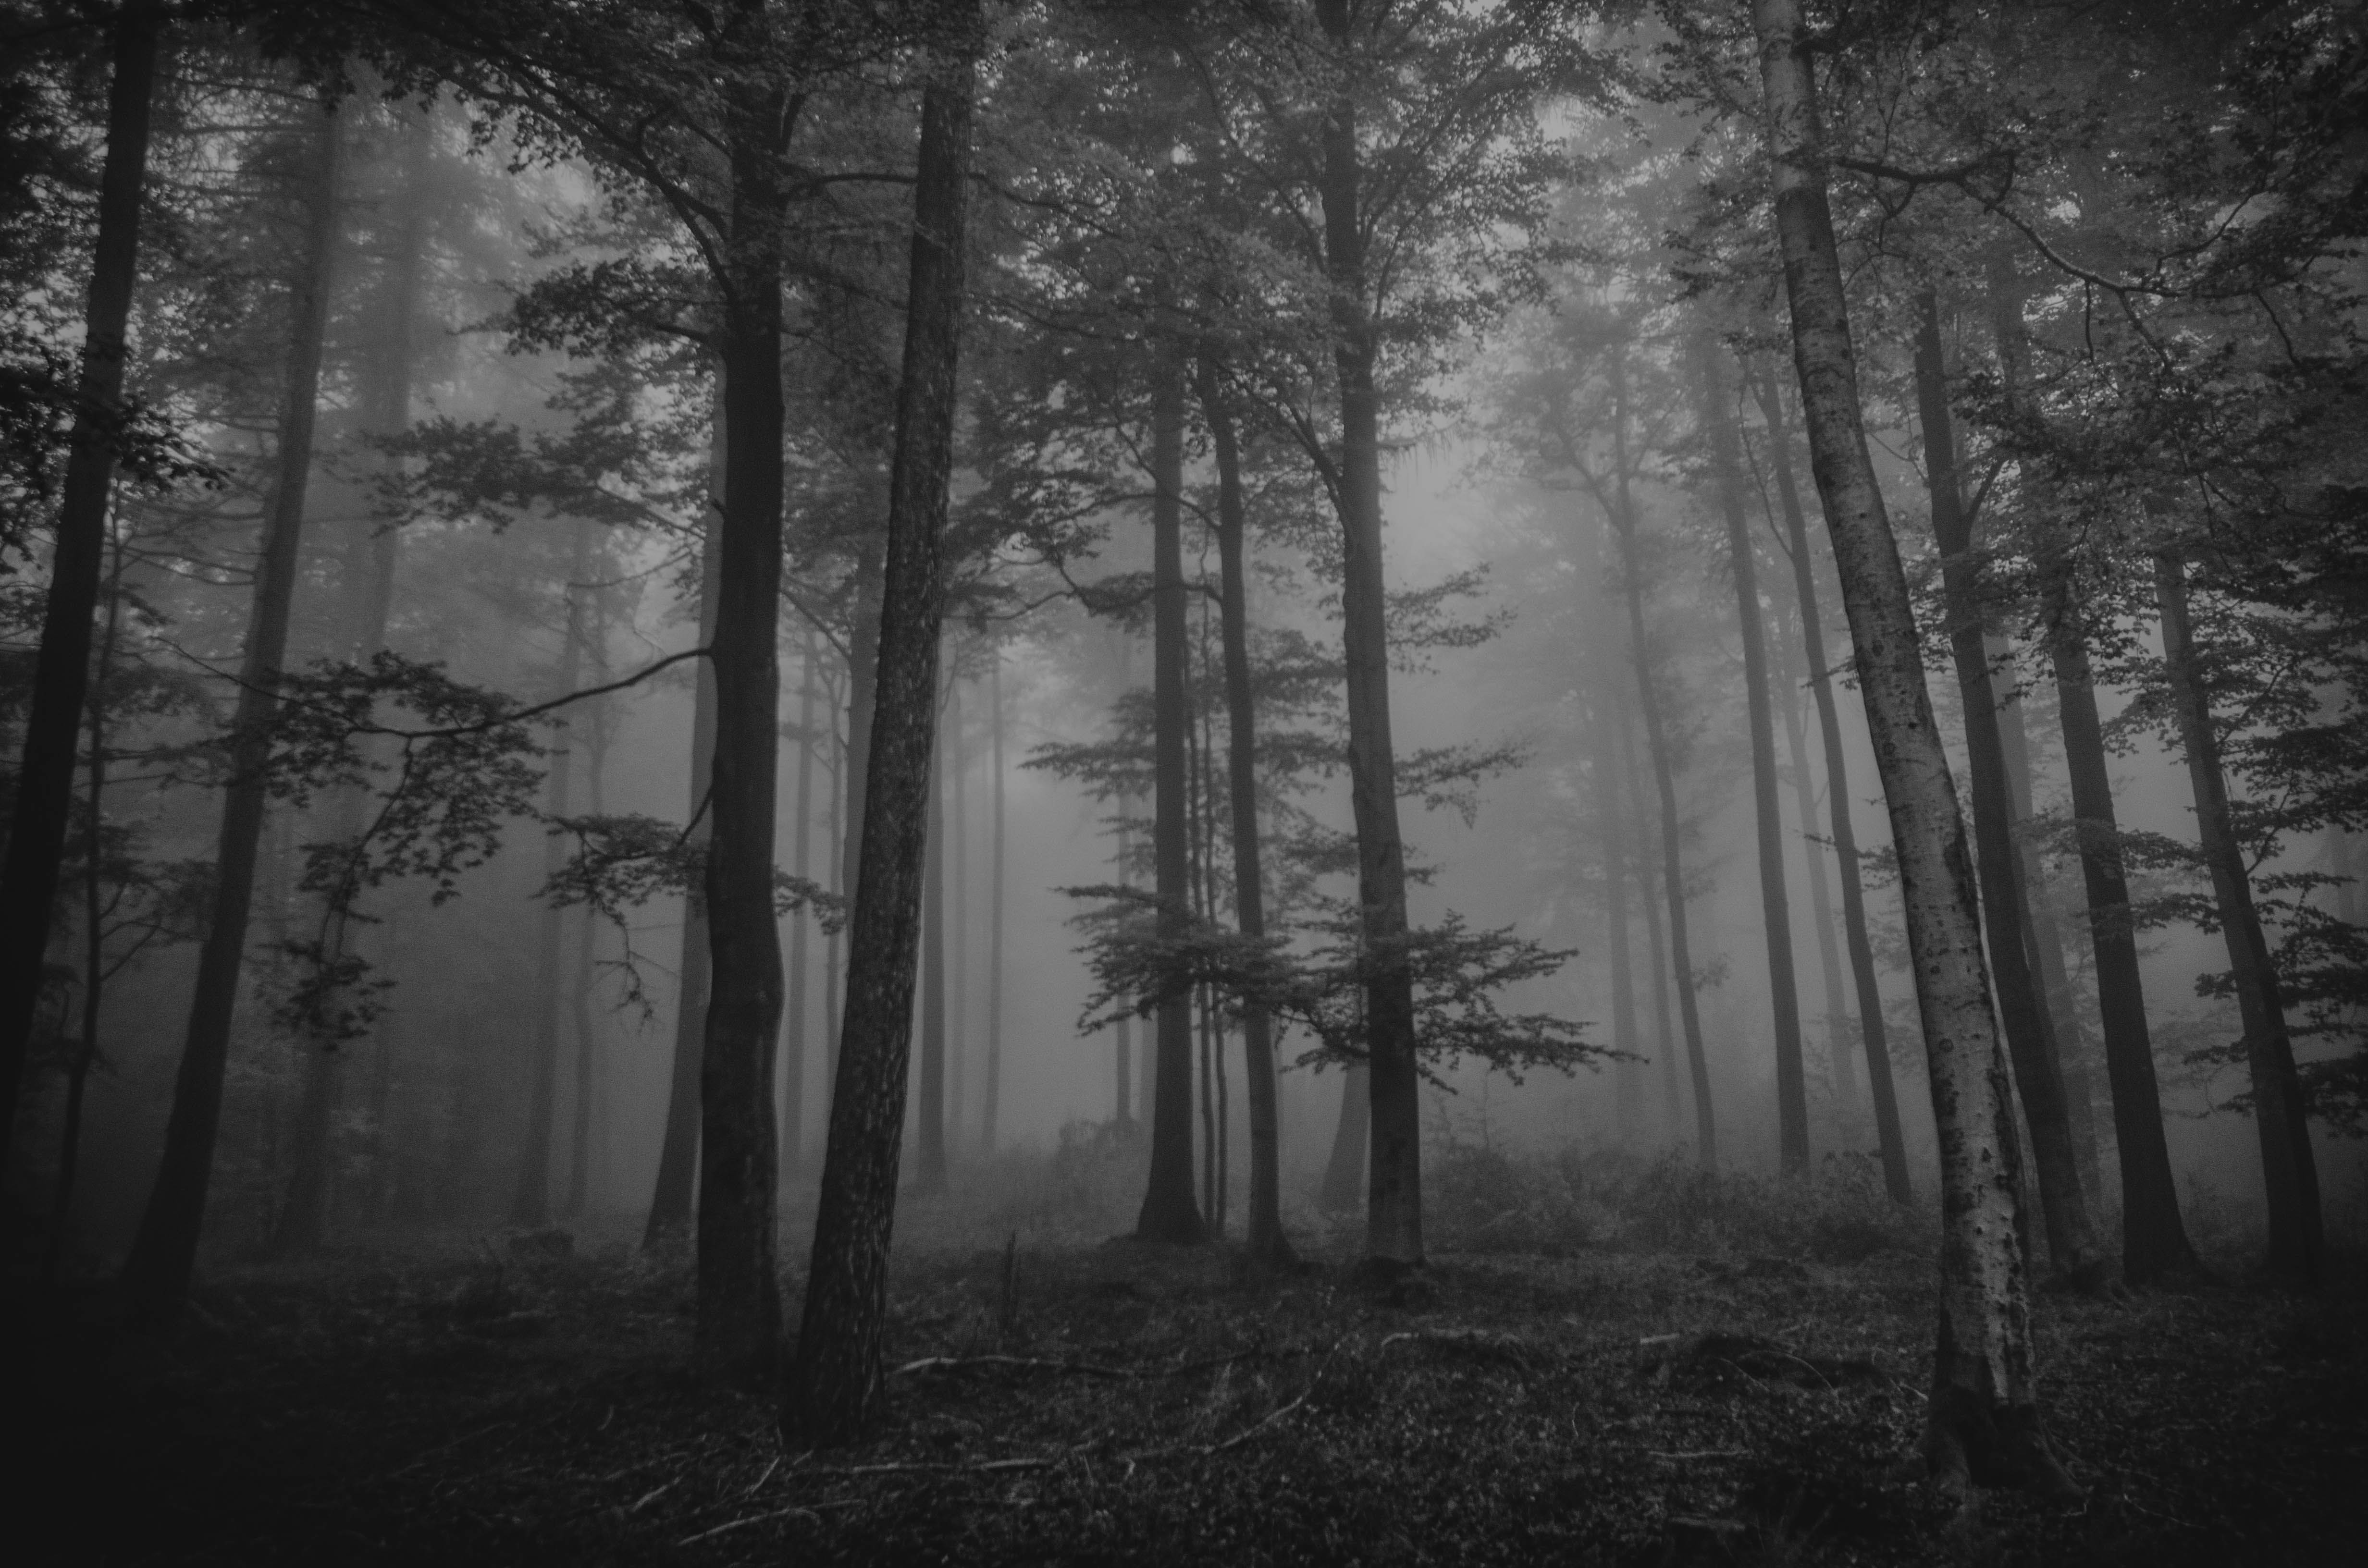 Road Forest Mist In High Definition Picture Wallpaper